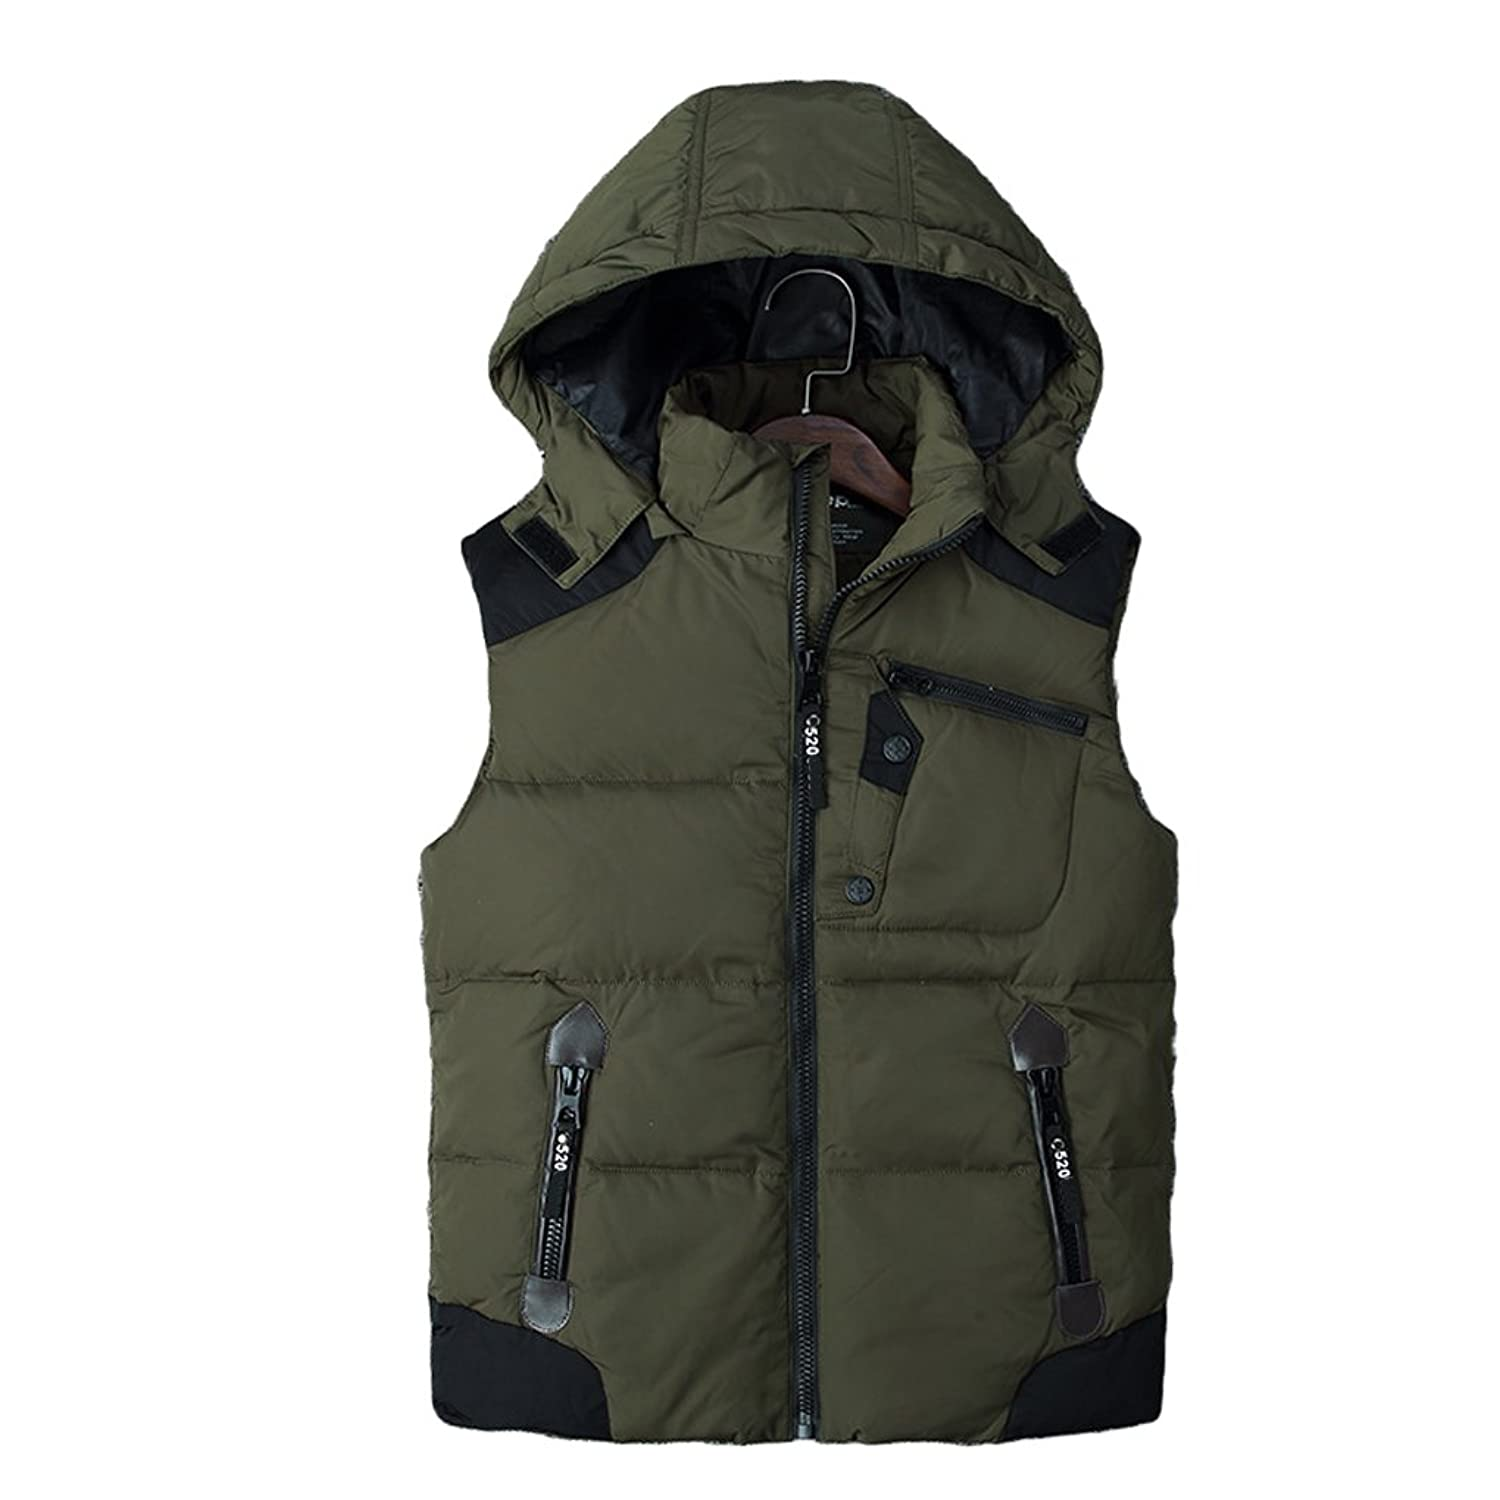 Zhhlinyuan Men's Winter Down Vest Hoodie Jacket Thick Outerwear Sleeveless